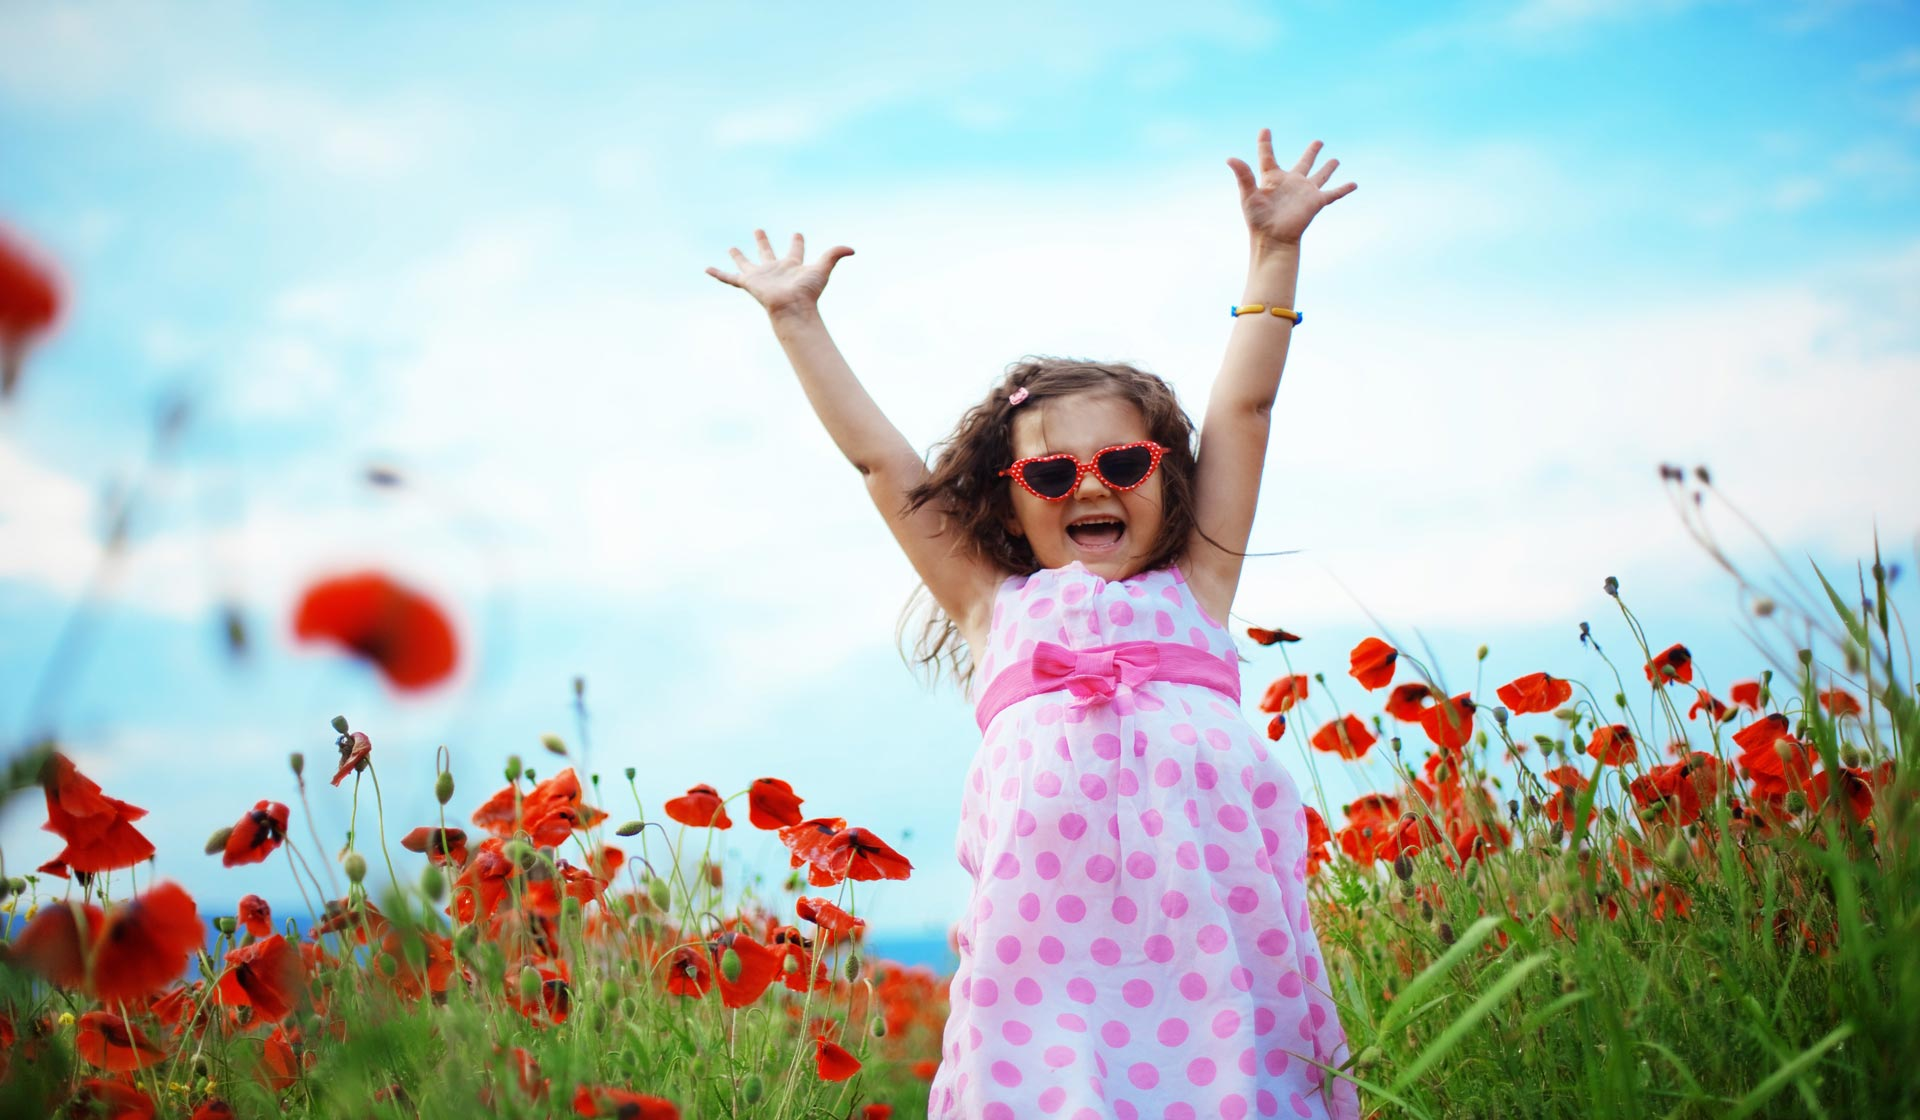 Little girl running in red flower field with her hands up in the air